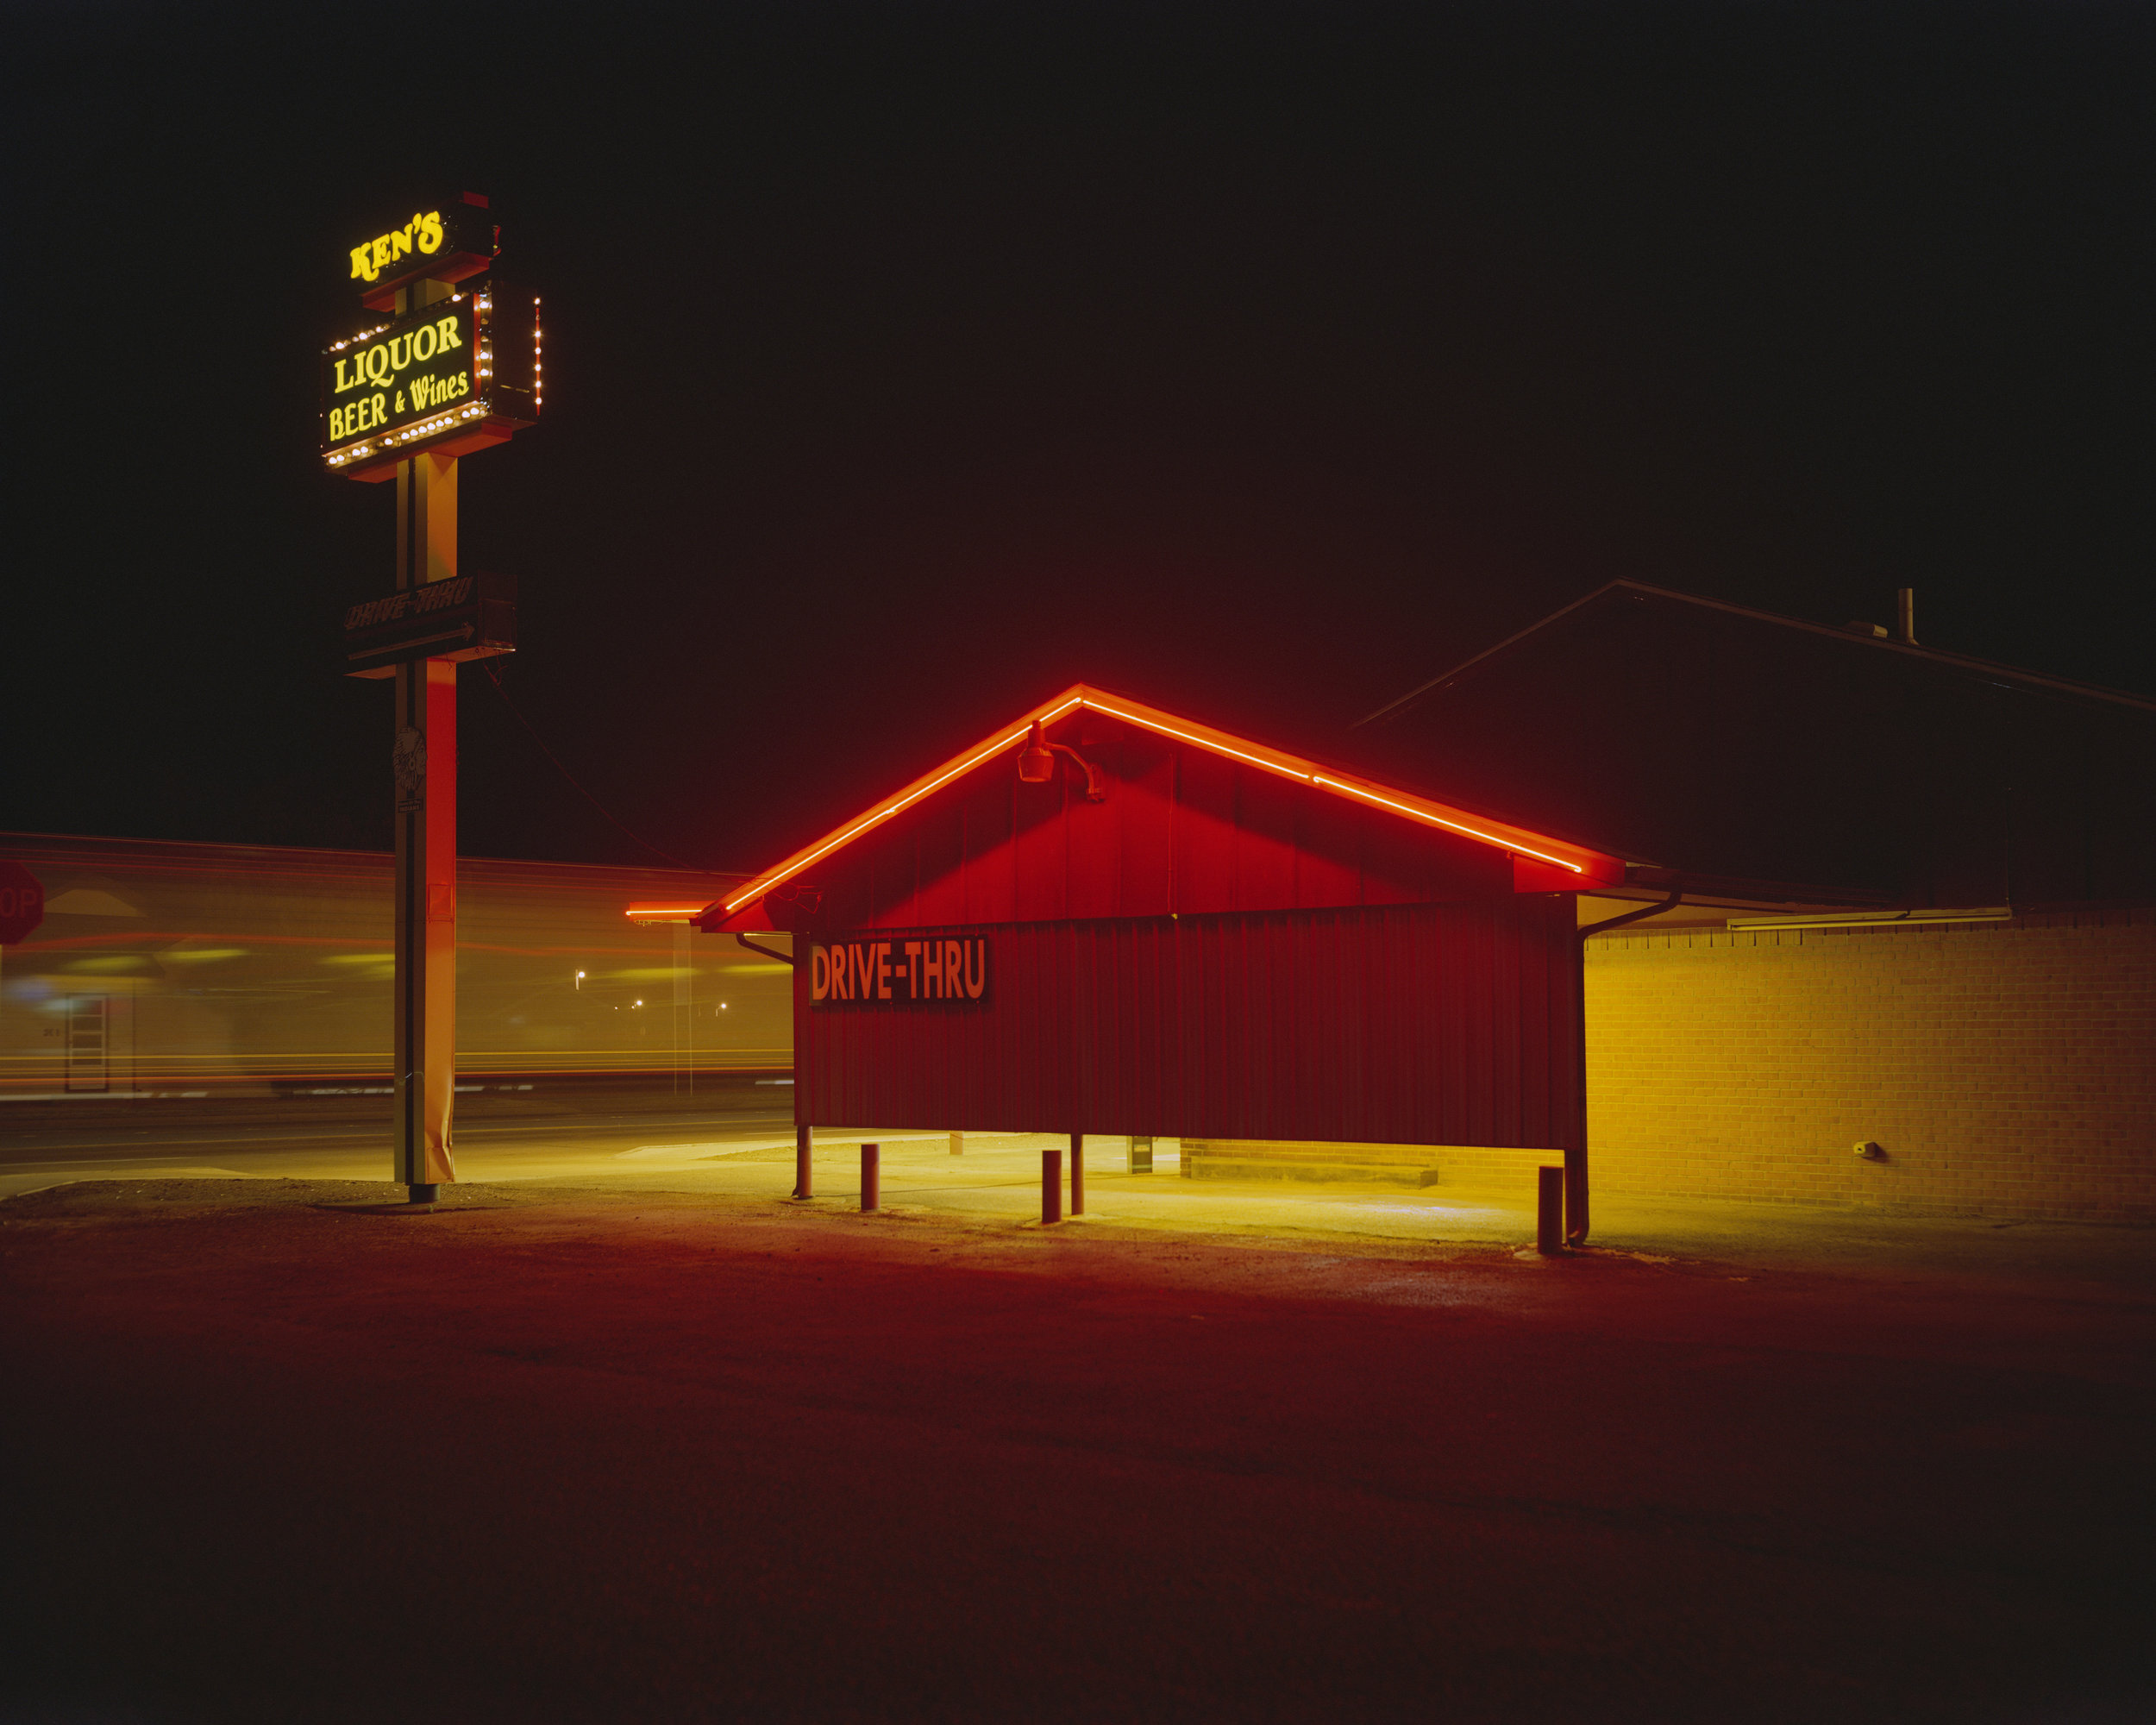 Ken's Liquor, Quanah, TX, Highway 287, 2017 - 4x5 film